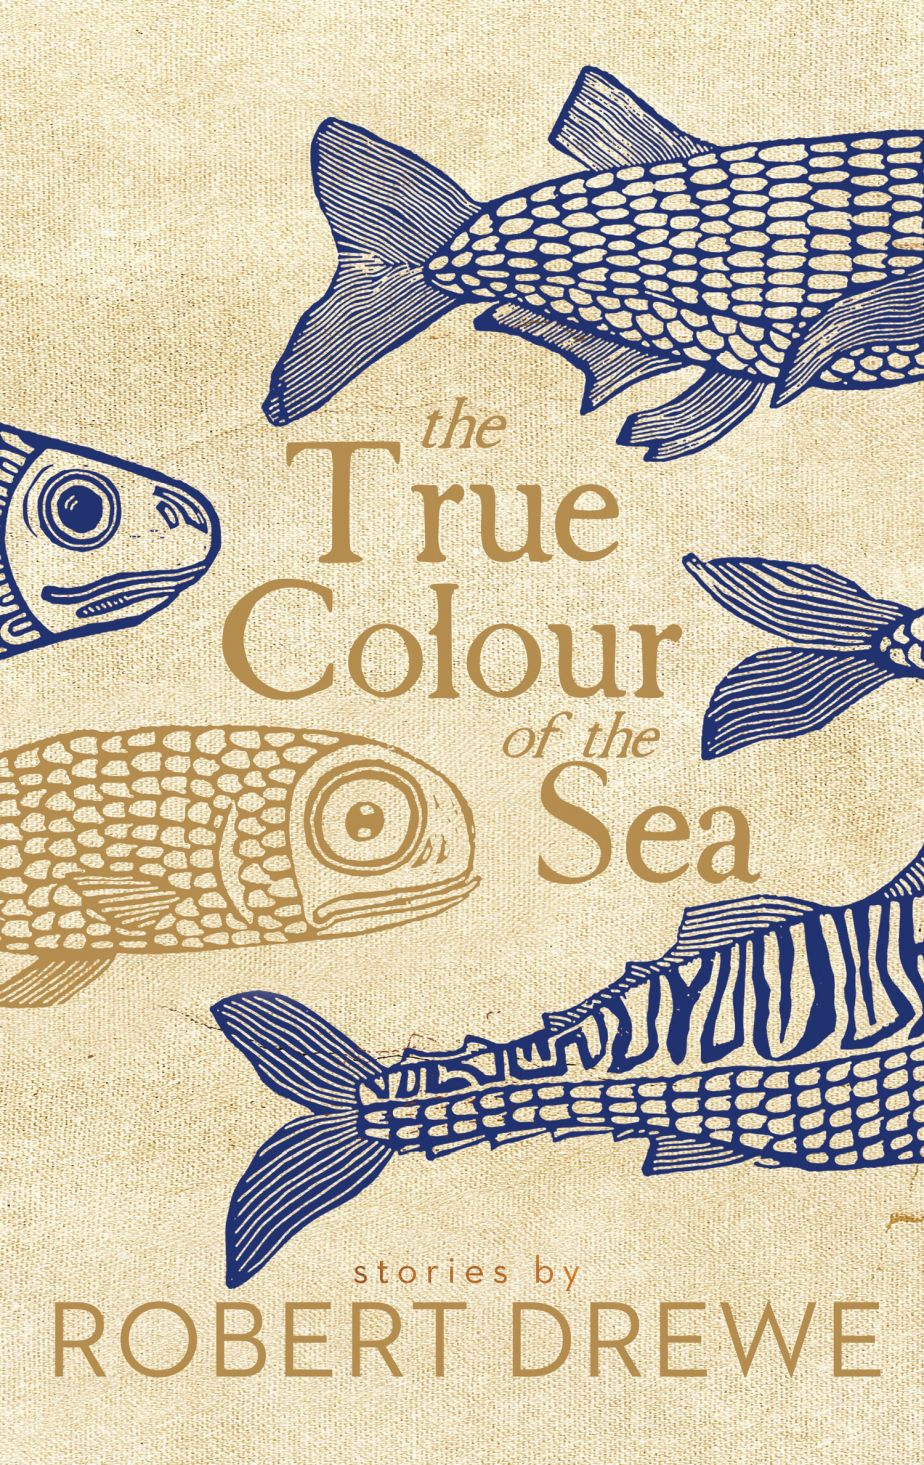 the book's cover, showing blue and gold illustrations of fish